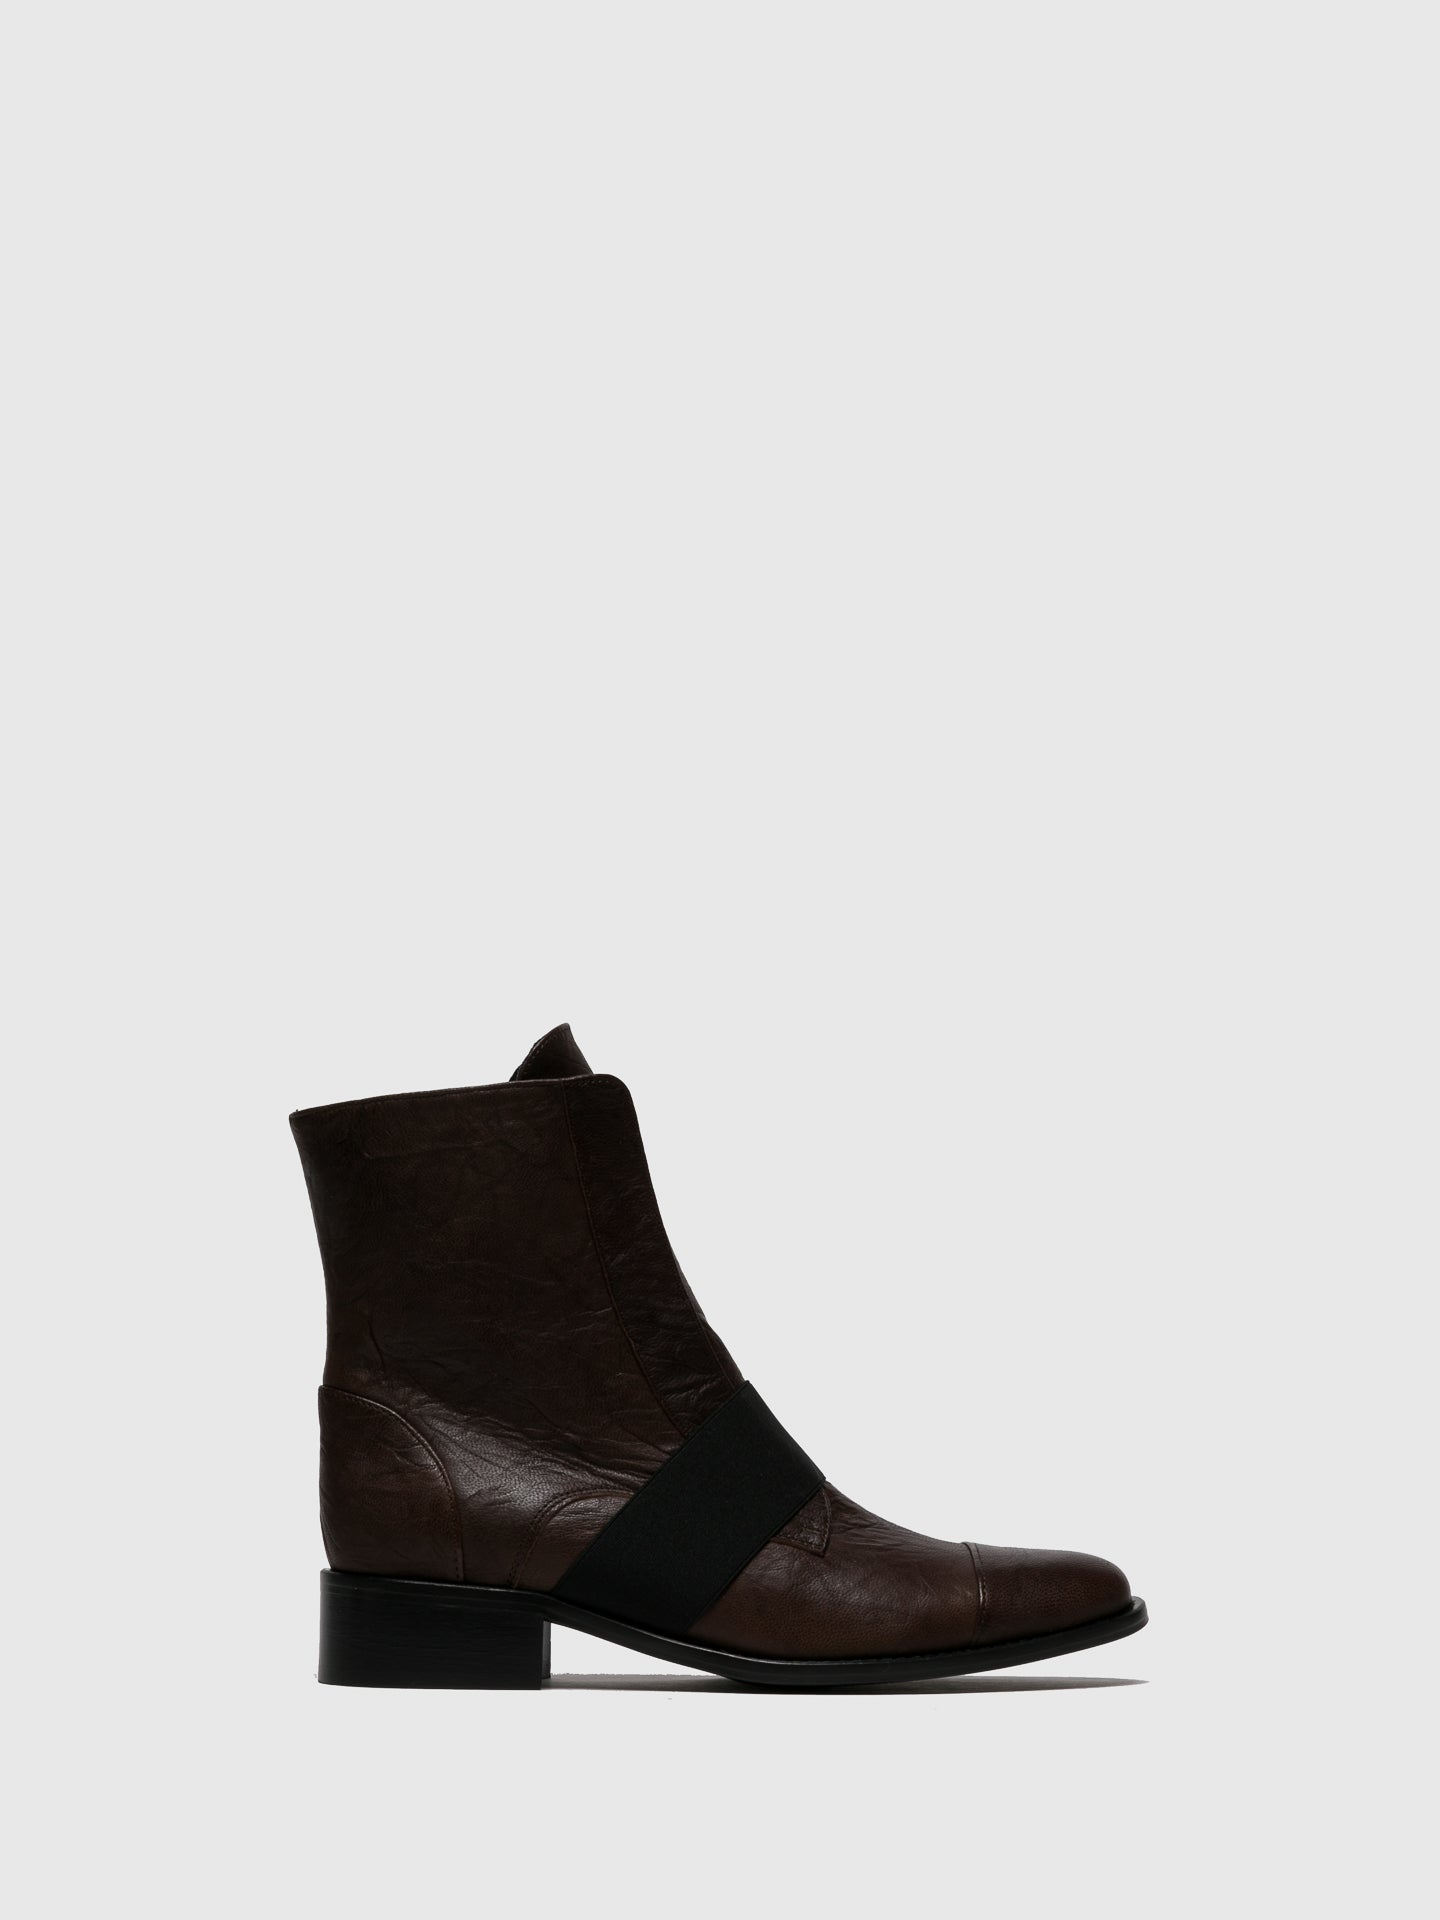 JJ Heitor Brown Elasticated Ankle Boots